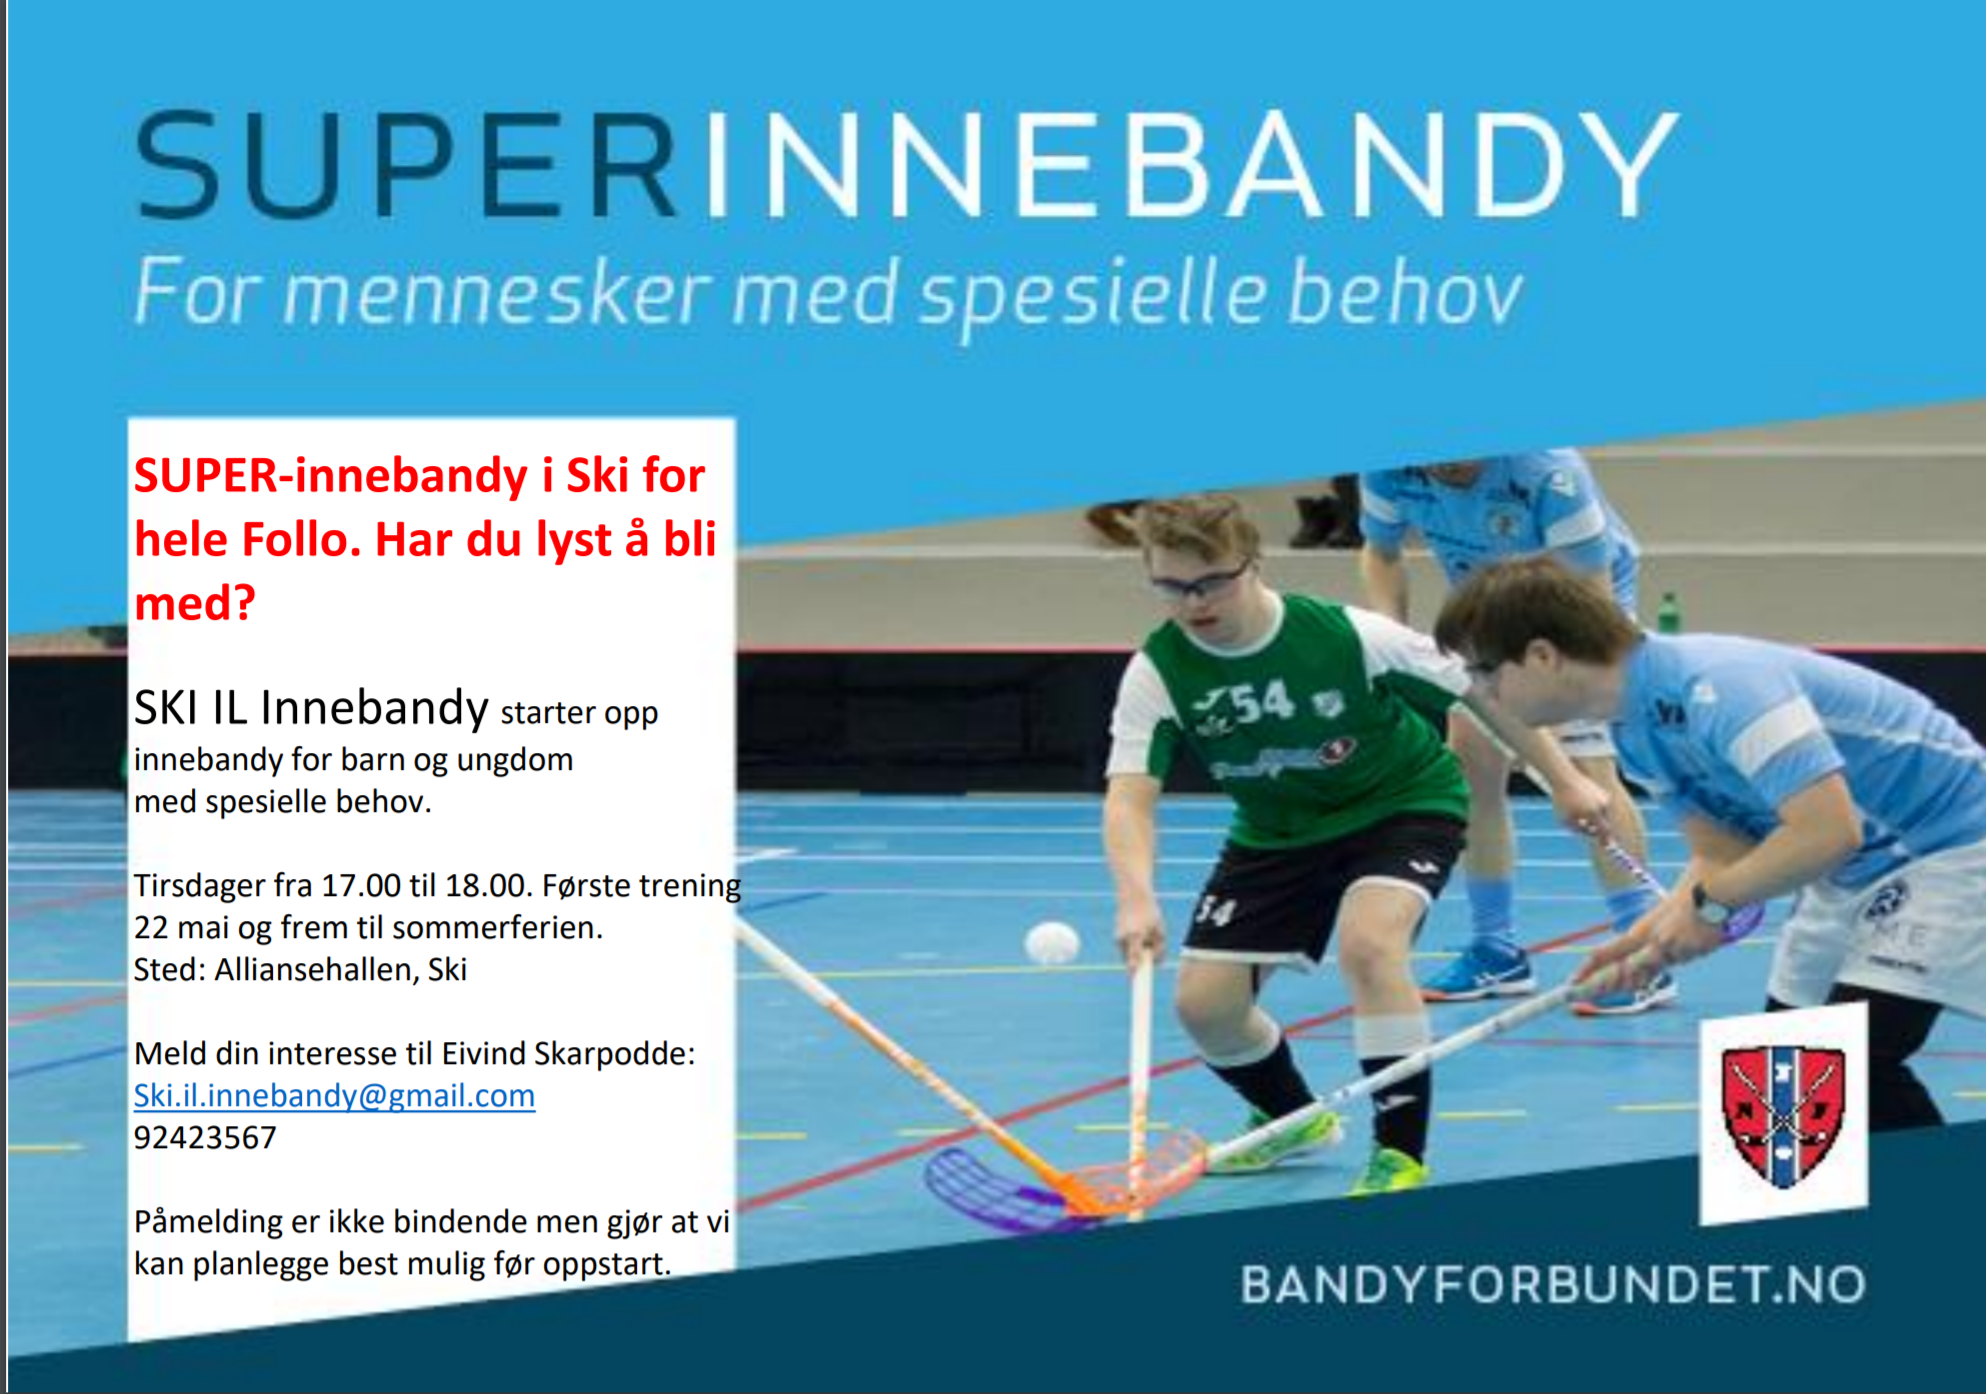 Superinnebandy